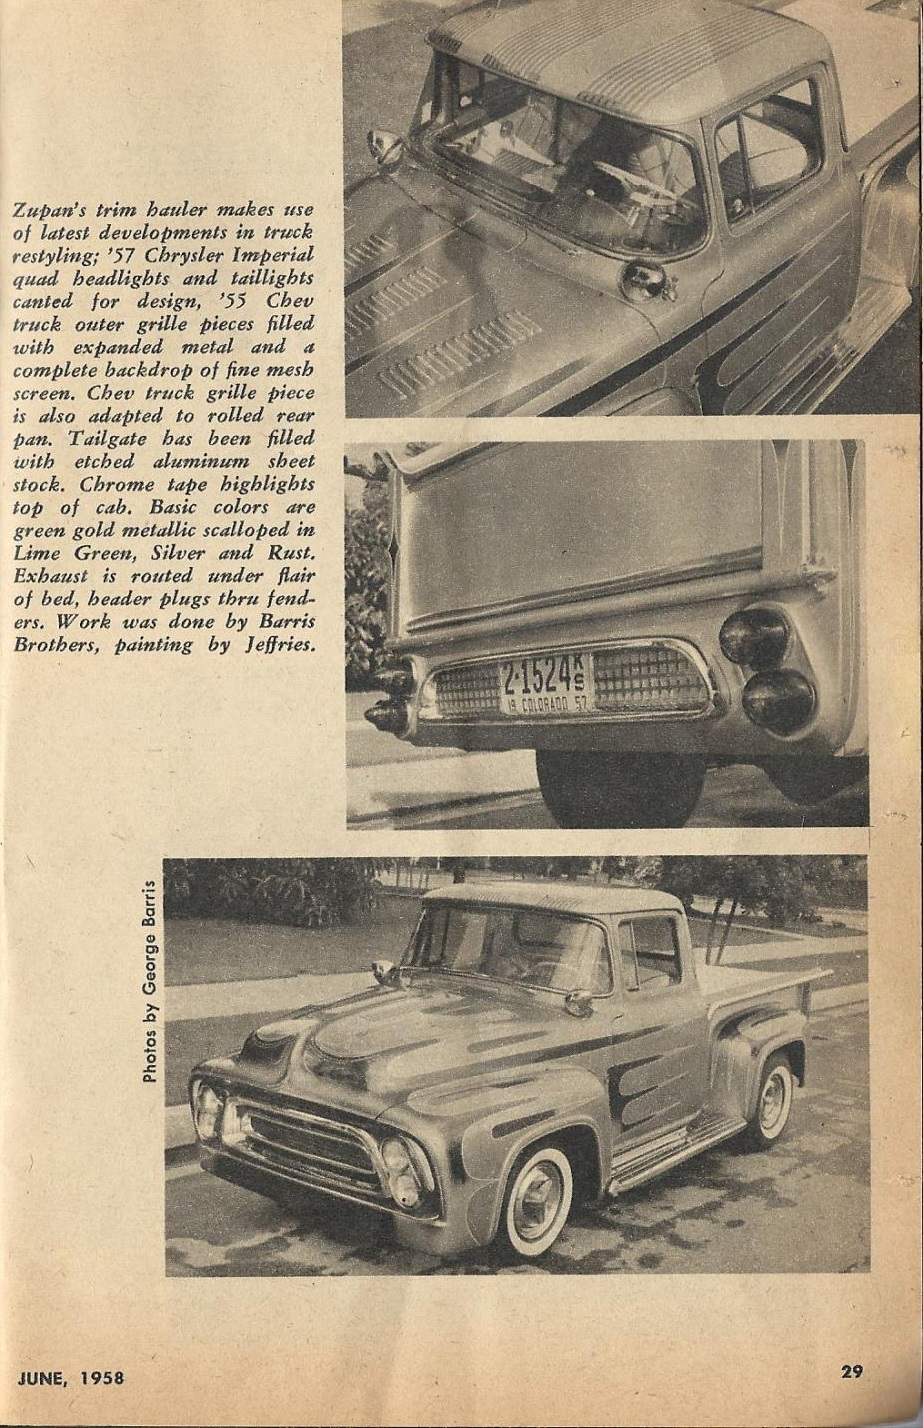 Car Craft - Special Pick Up June 1959 - Pick up Pictorial 2917